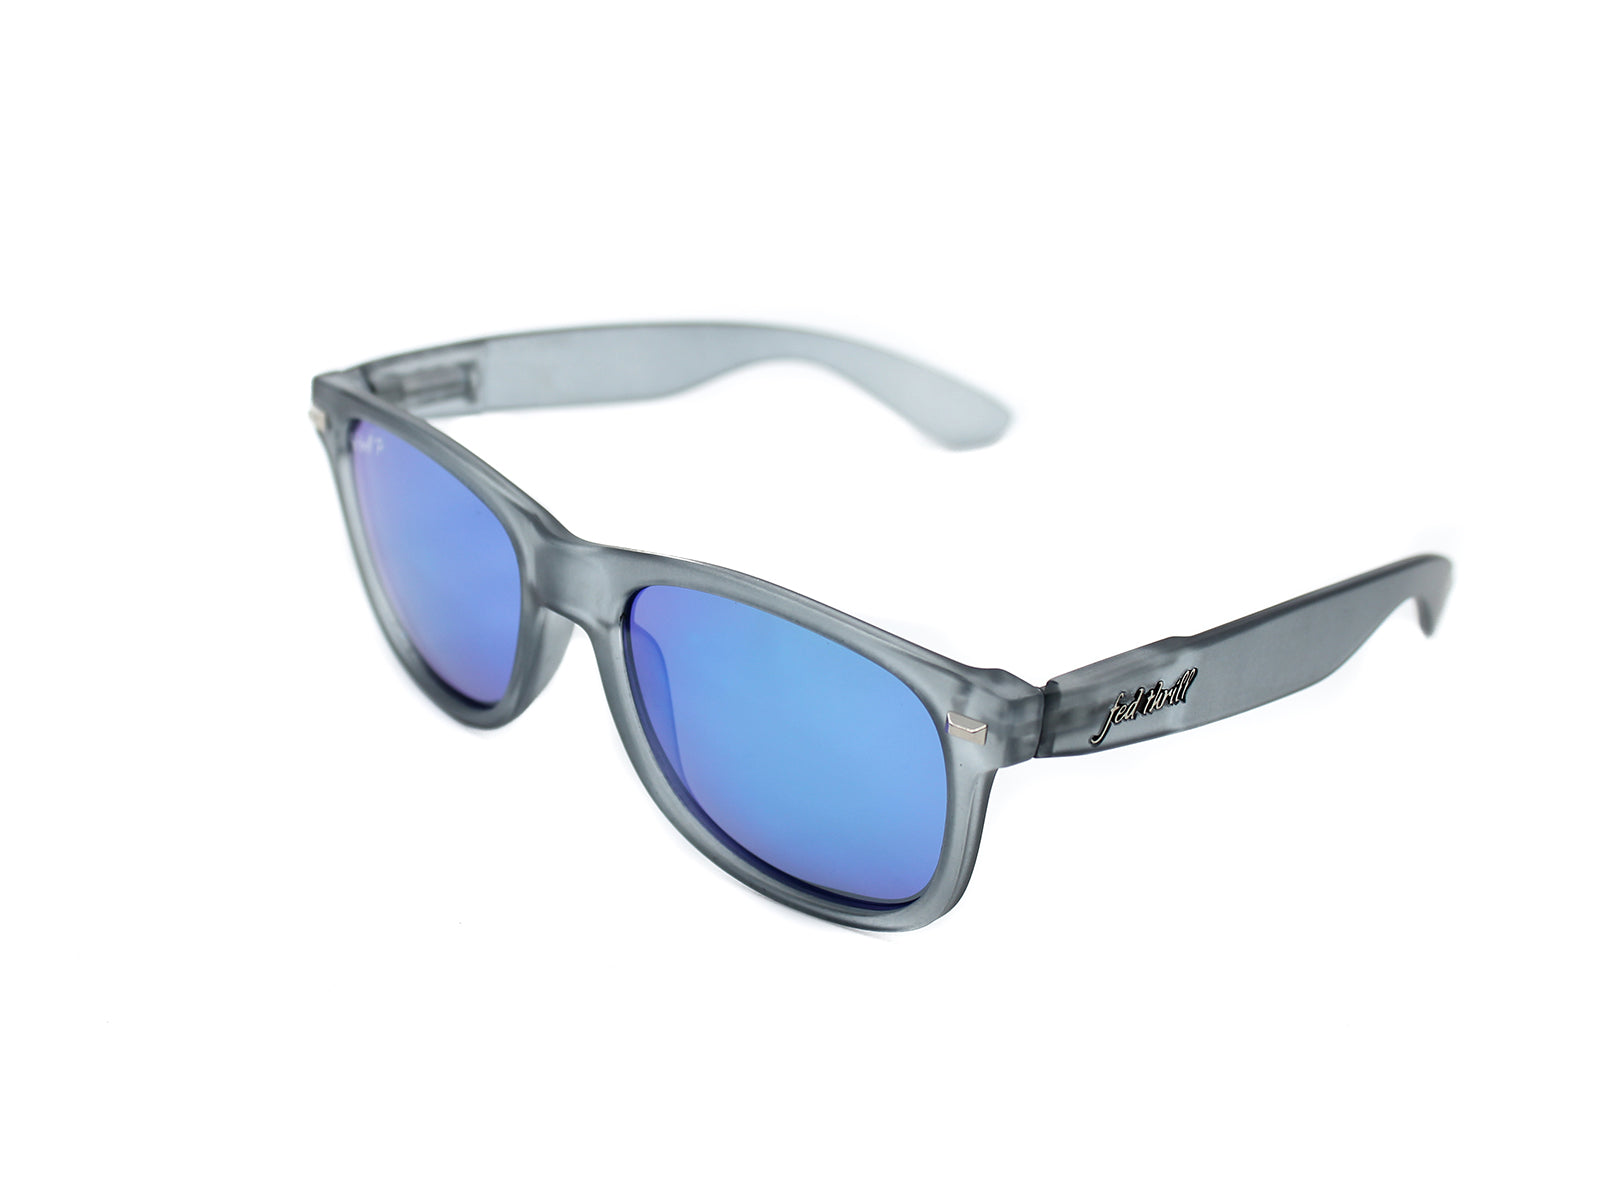 Fultons - Ceruleans: Frosted Gray / Mirrored Blue Polarized